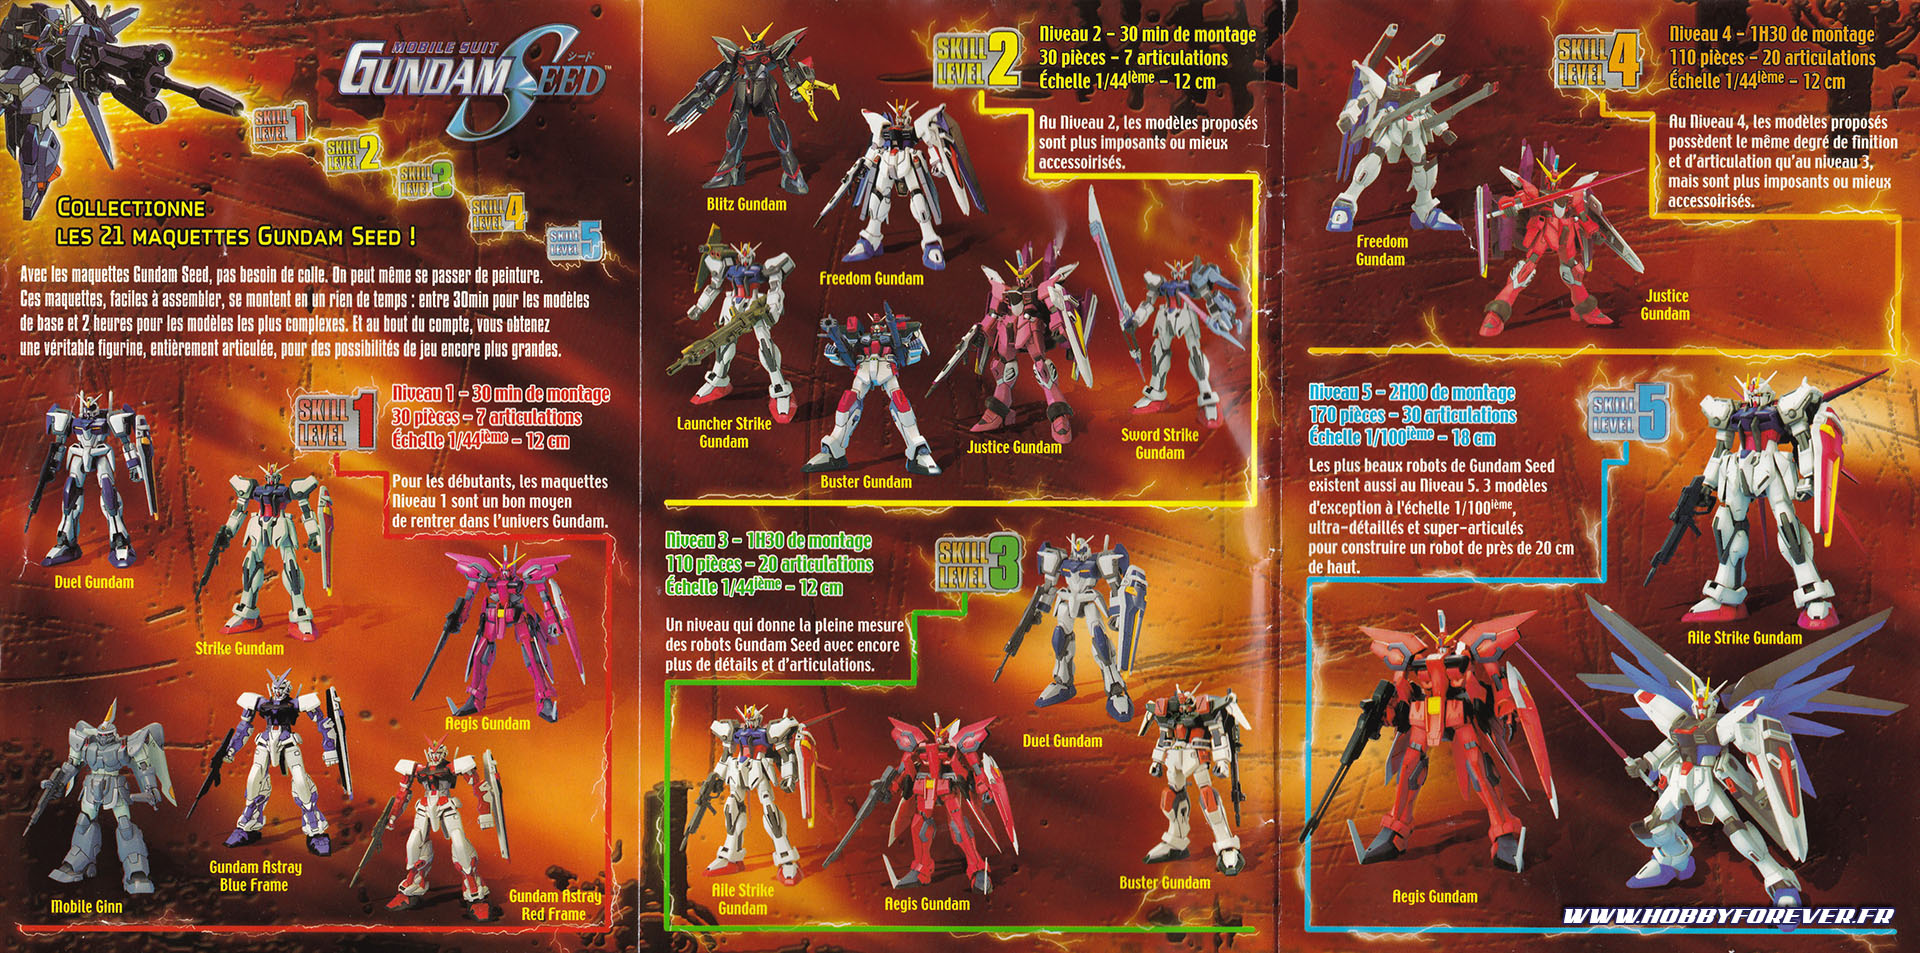 Extrait du catalogue de Bandai France de 2005